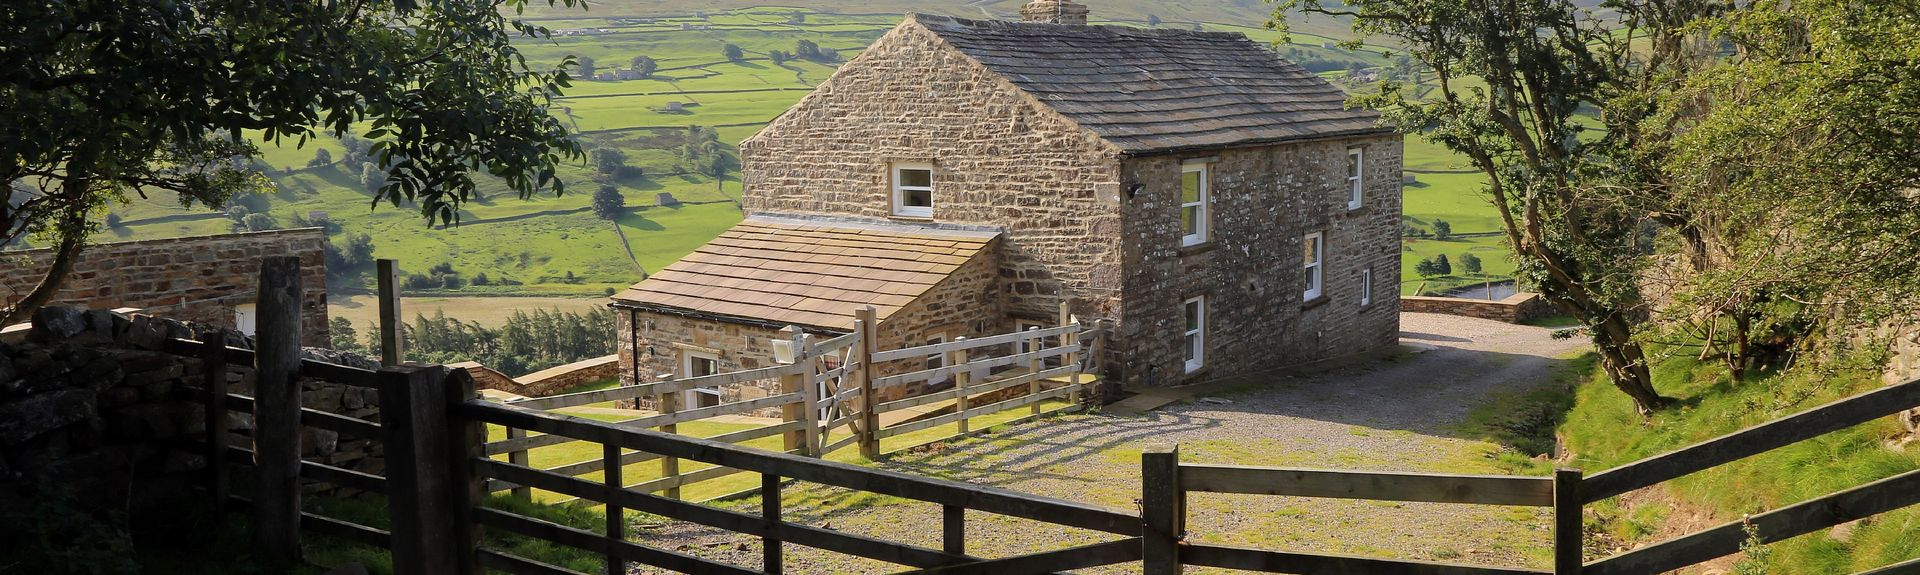 Stacja Horton-in-Ribblesdale, Horton in Ribblesdale, Anglia, Wielka Brytania